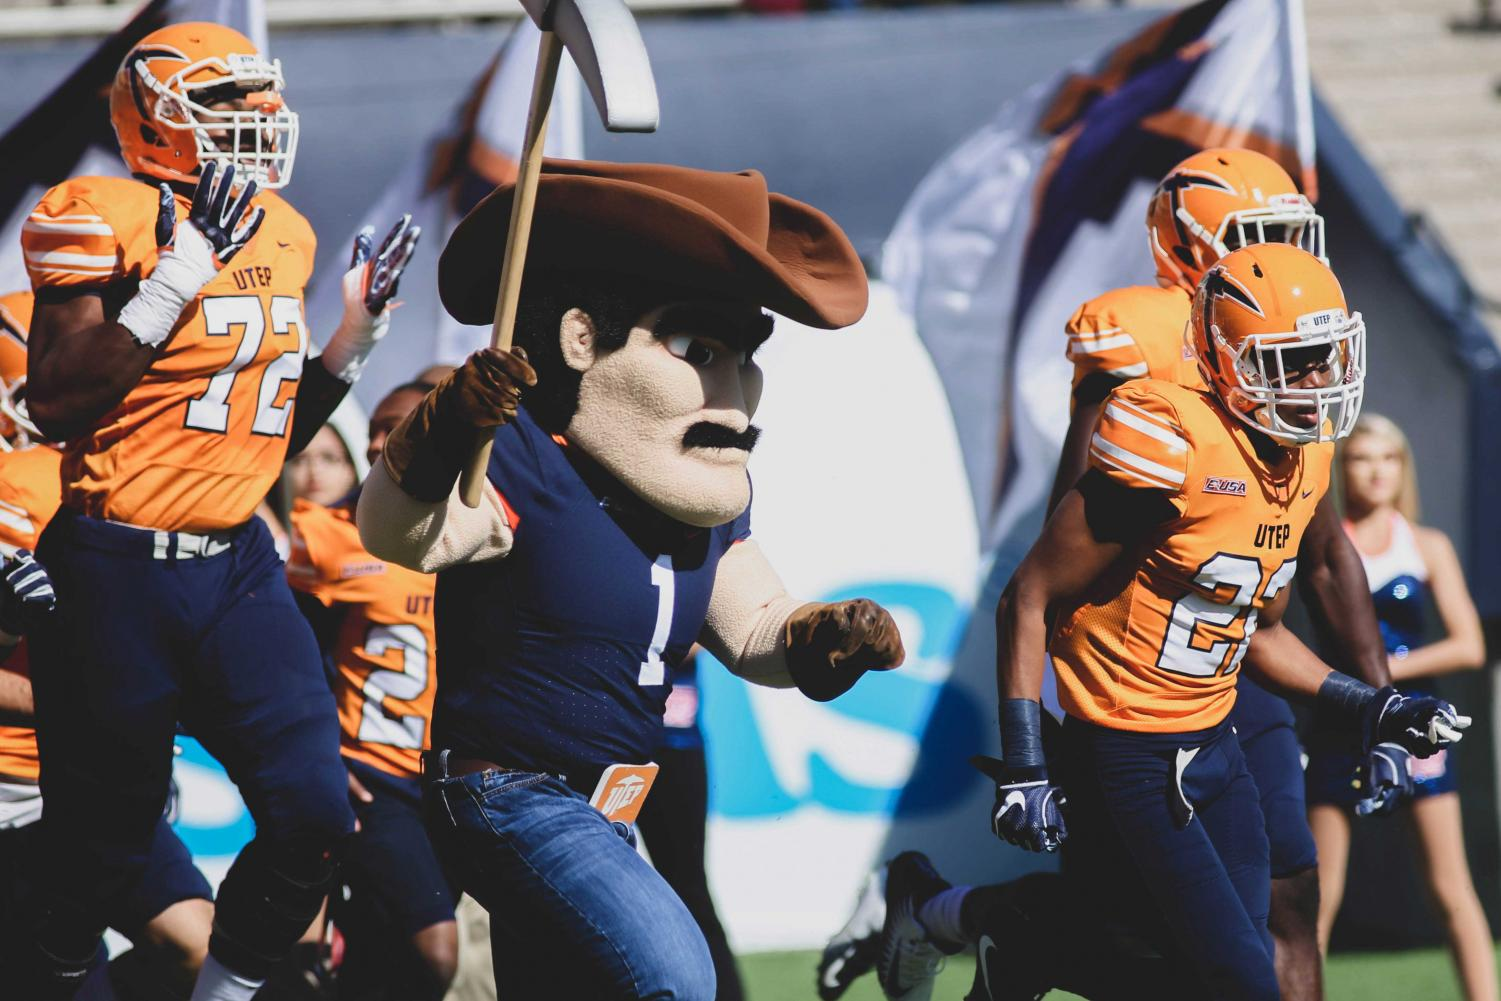 UTEP football will look to win its second game in C-USA against the Western Kentucky Hilltoppers on Saturday, Nov. 17